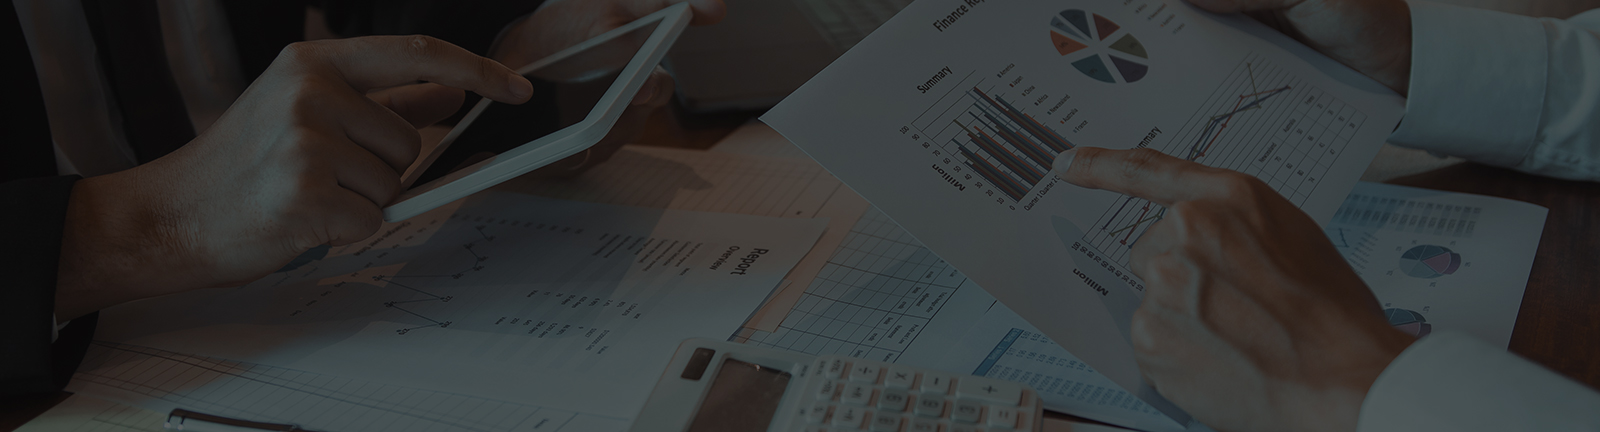 Customer analytics – a data-driven approach to reduce churn in financial institutions